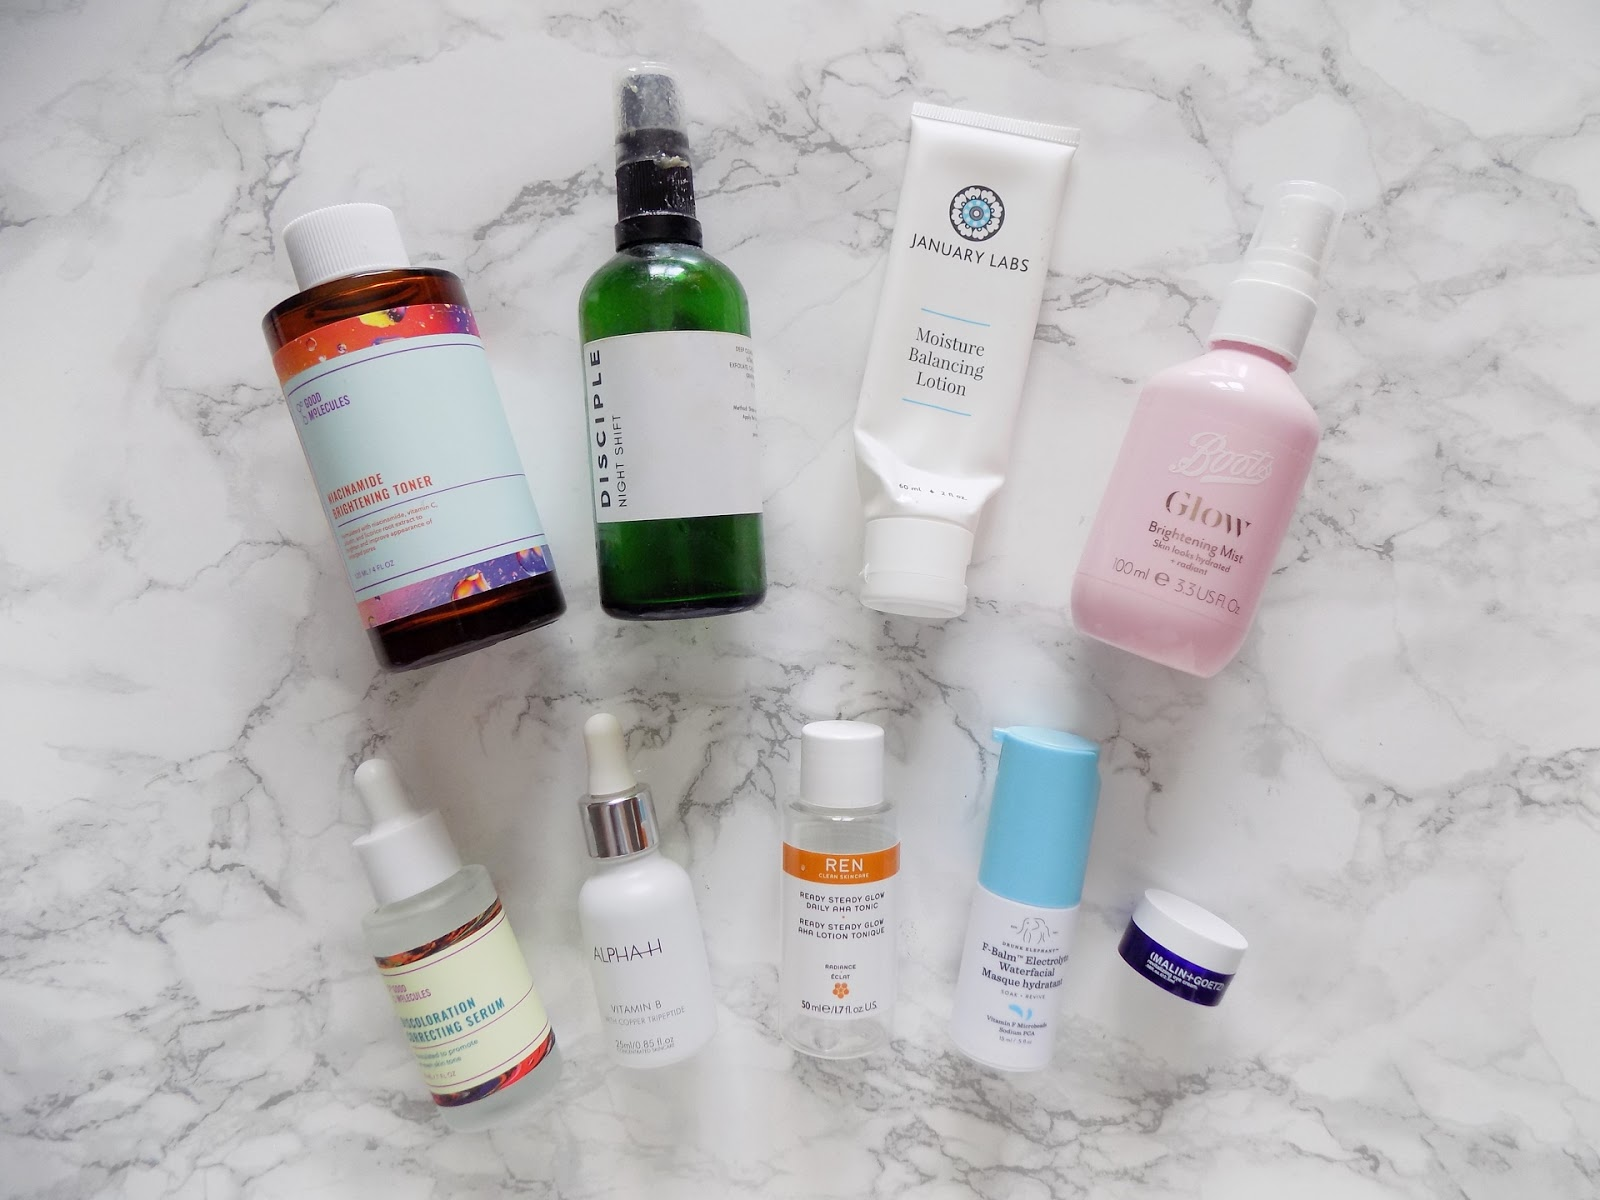 skincare empties good molecules January labs alpha h ren